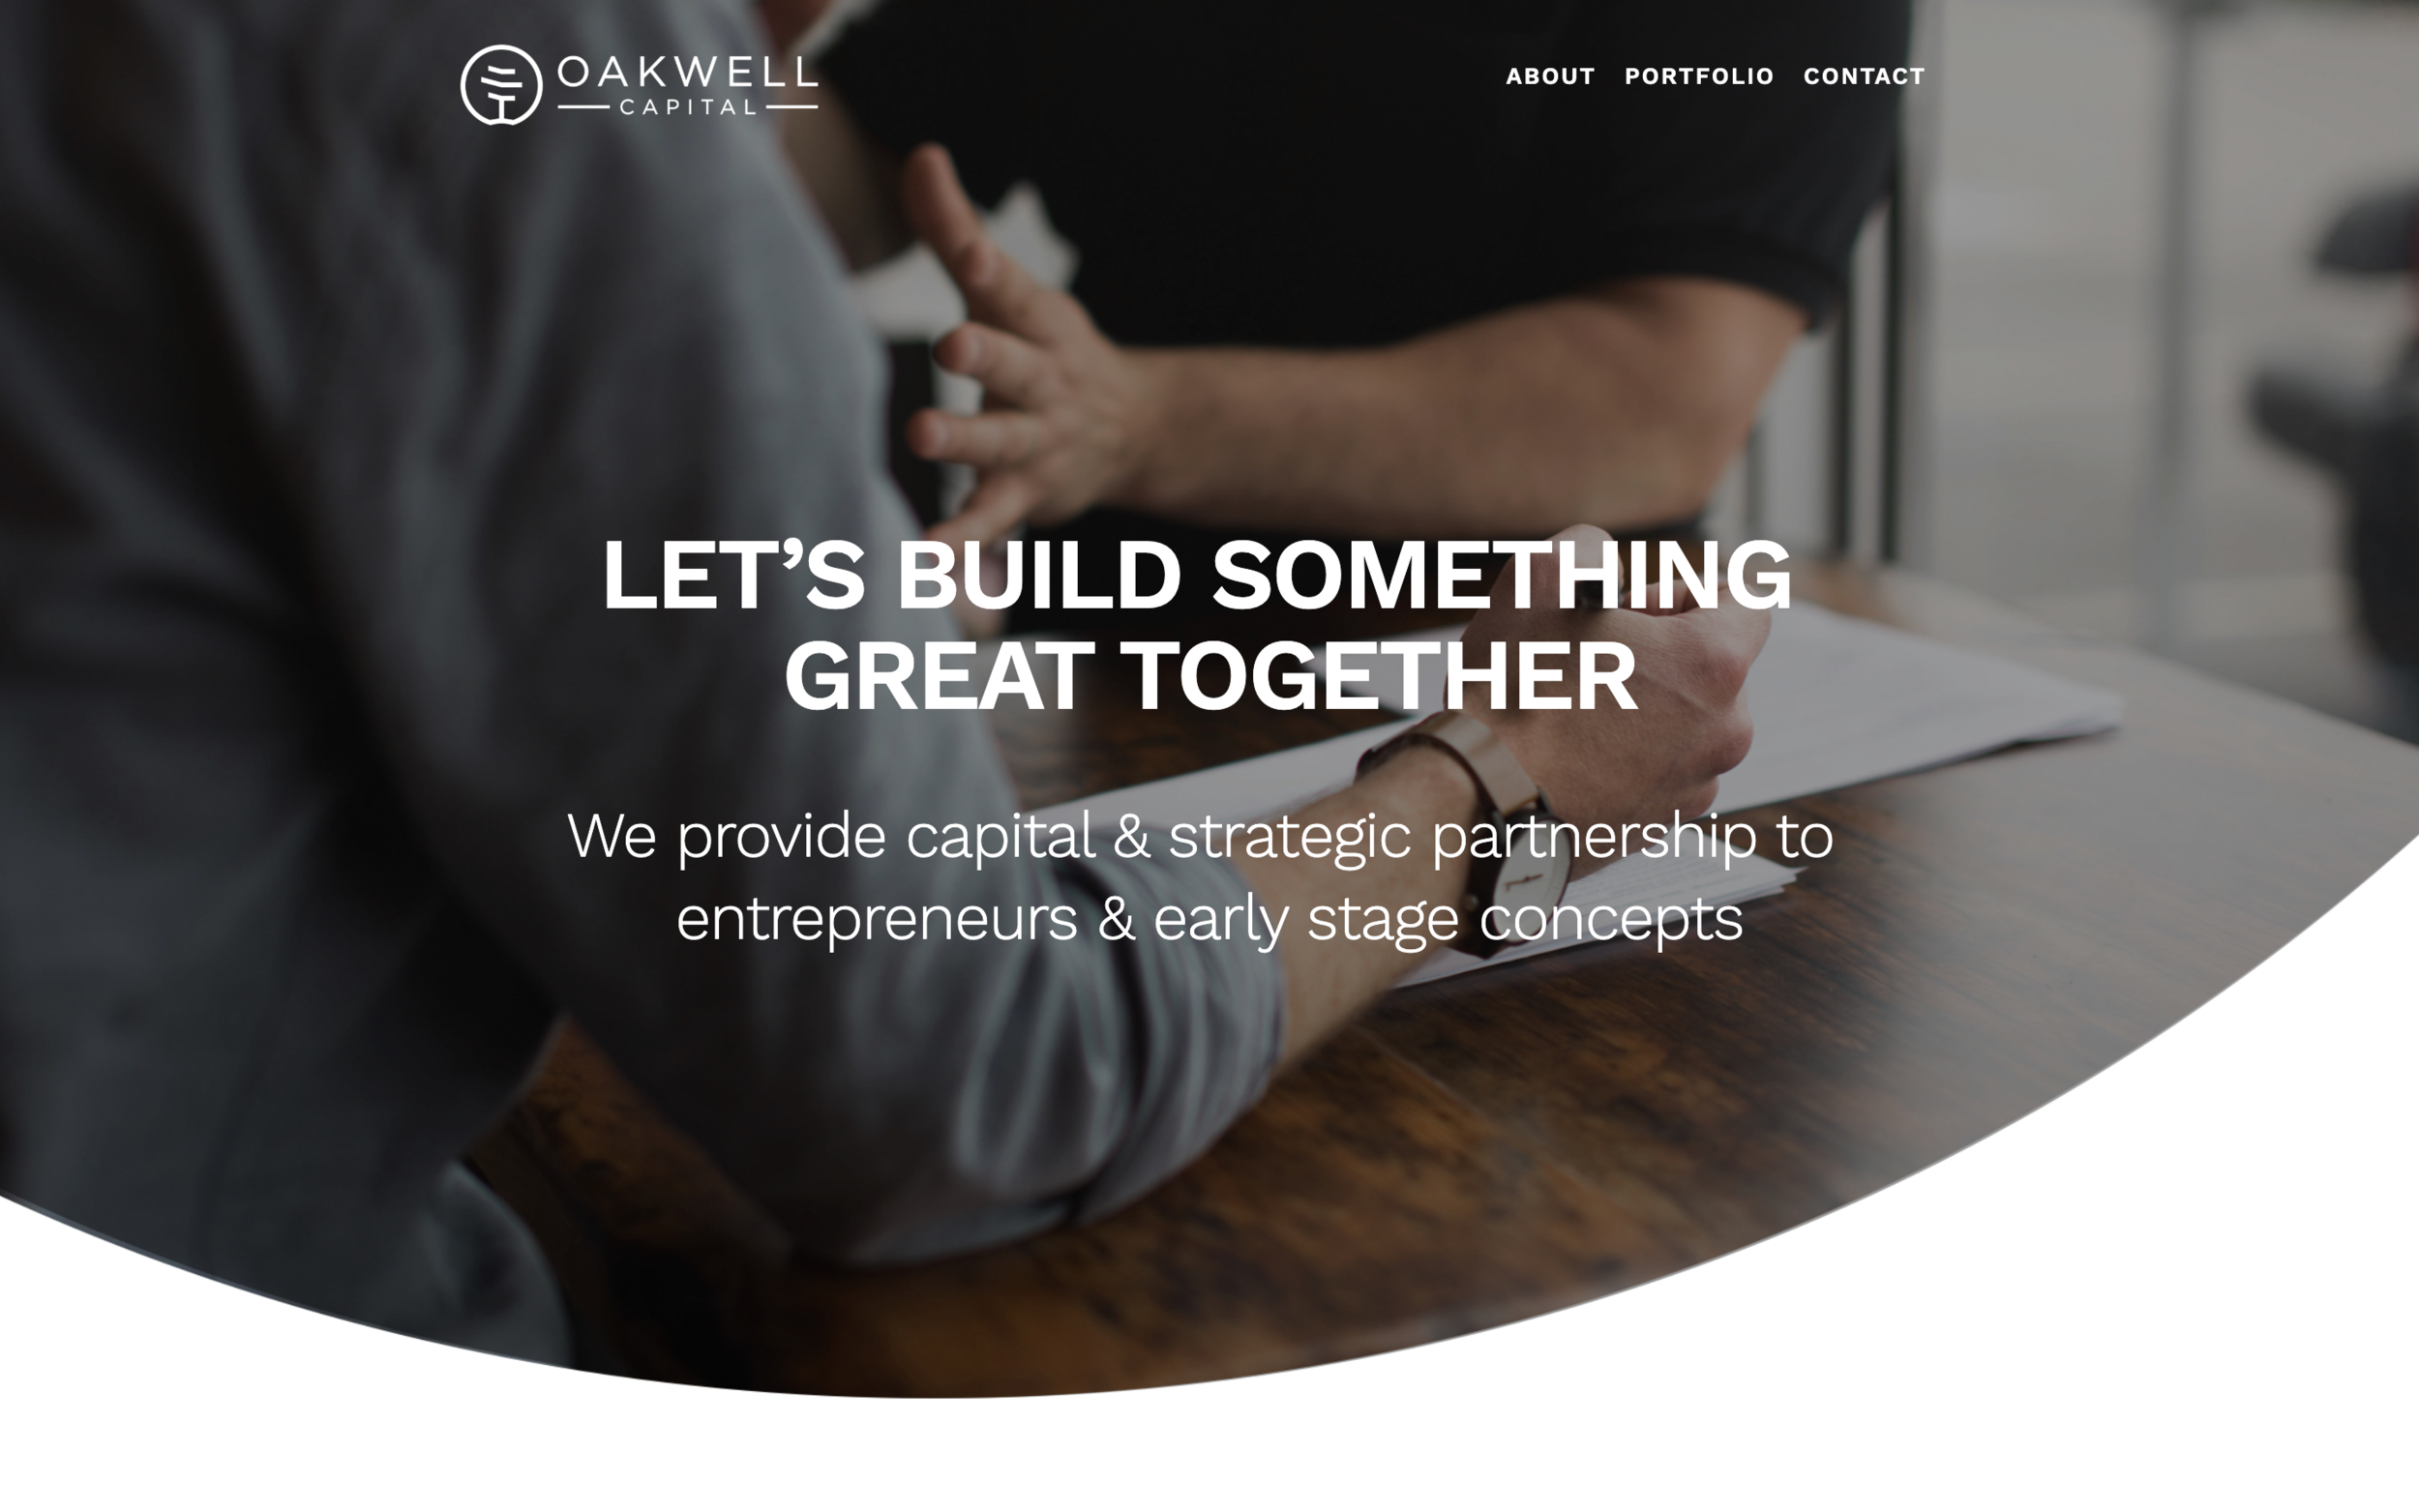 oakwellcapital.com - Custom Investment Firm Squarespace SolutionWe partnered with Oakwell Capital to create a unique Squarespace website. They had requests for things like animations and specific layout needs and we were able to deliver the perfect site for the company to share with future investment opportunities.